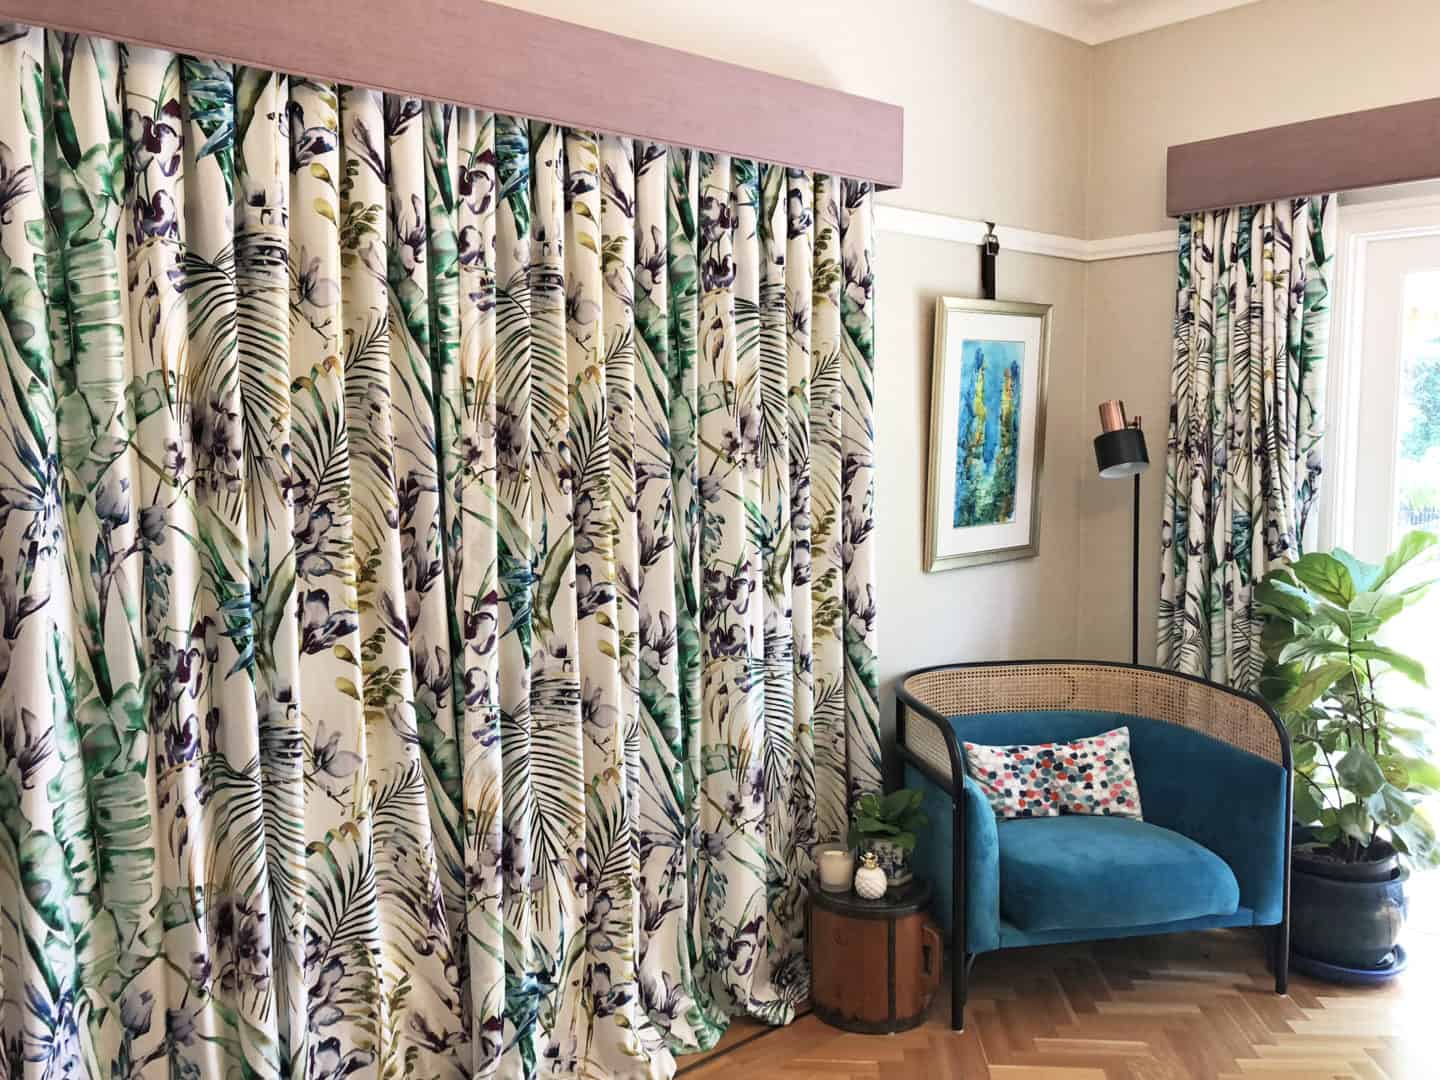 Patterned curtains with pelmets